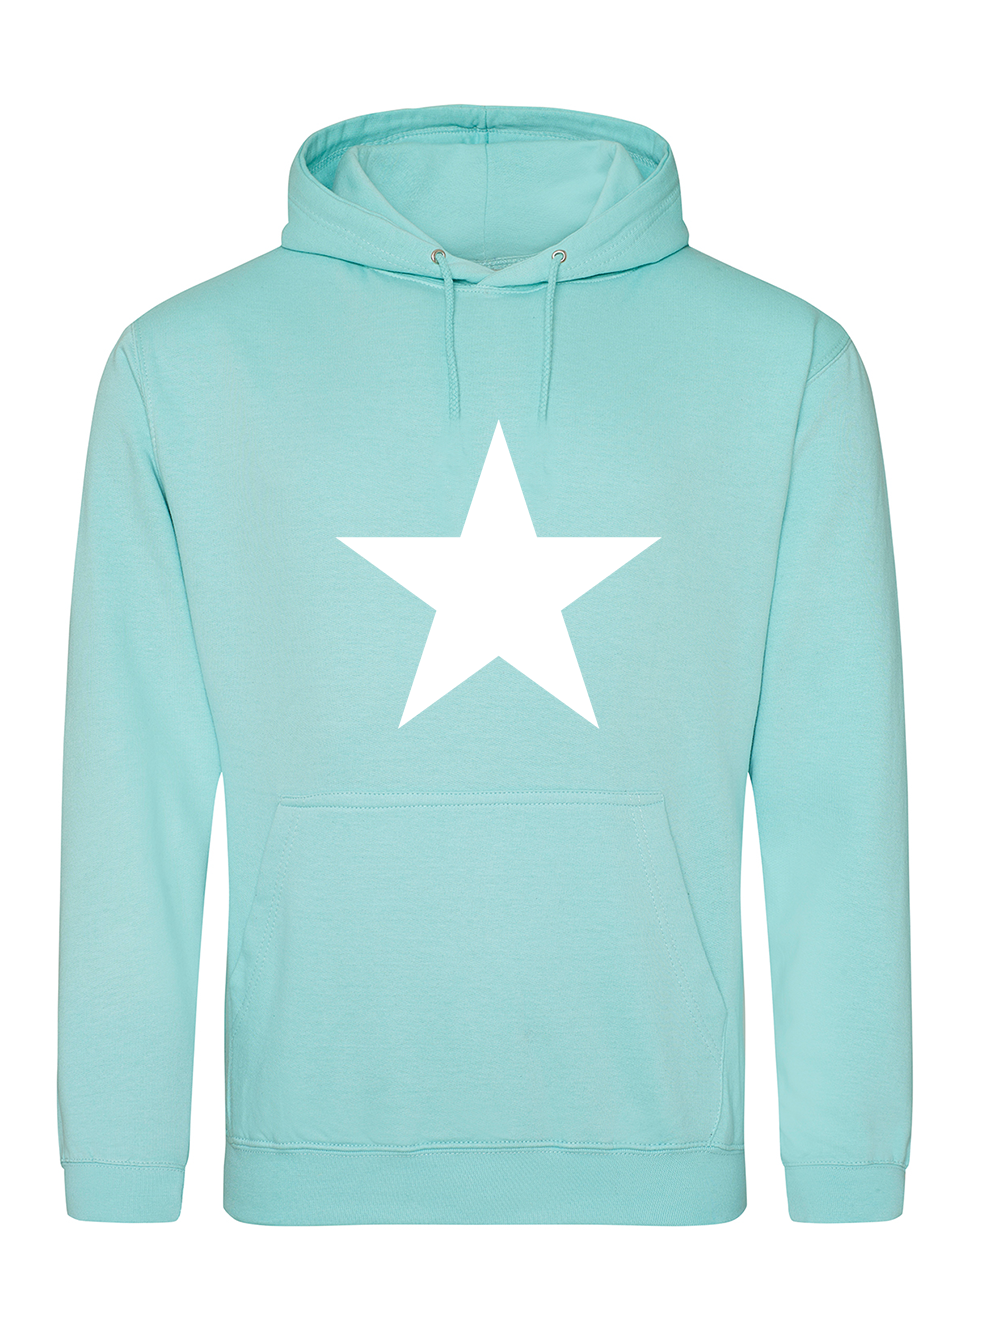 The Everyday Hoodie – Peppermint